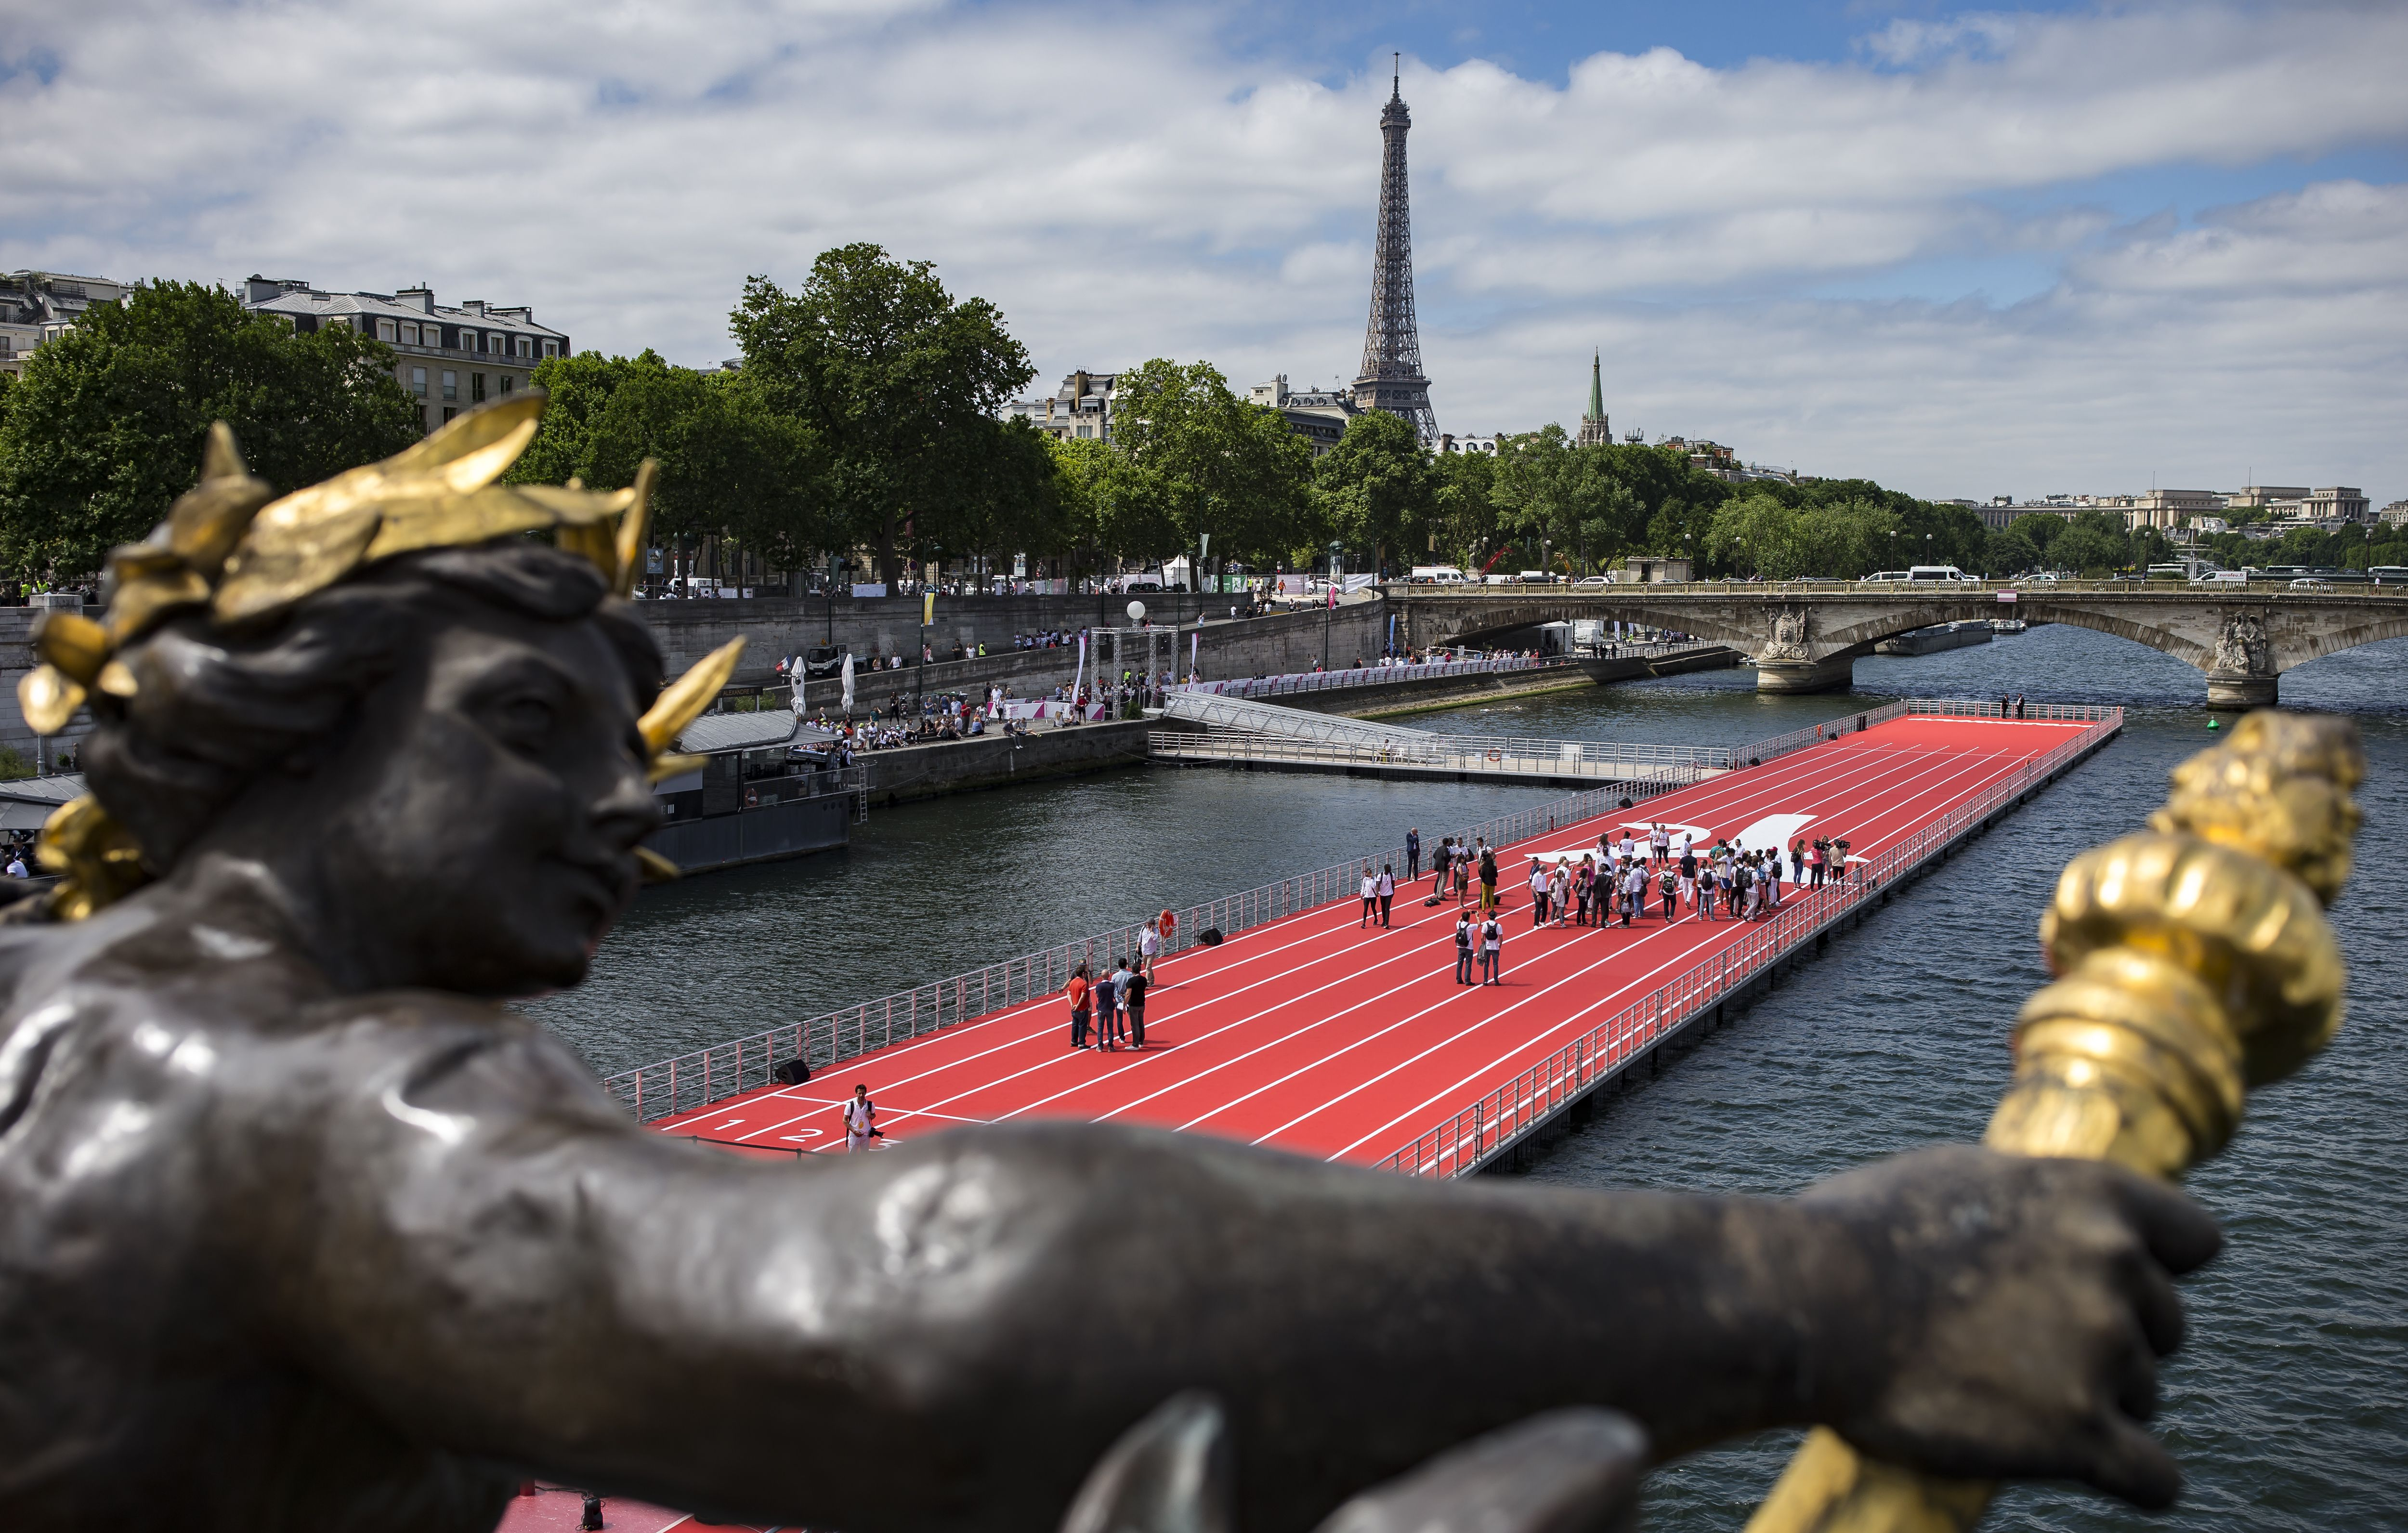 A view from the Pont Alexandre III of an athletics track floating on the river Seine in Paris, France, 23 June 2017. In an effort to promote the 2024 Paris Olympic bid, sporting venues open to the public are set up throughout the city for one day.Paris 2024 olympic promotion in Paris, France - 23 Jun 2017